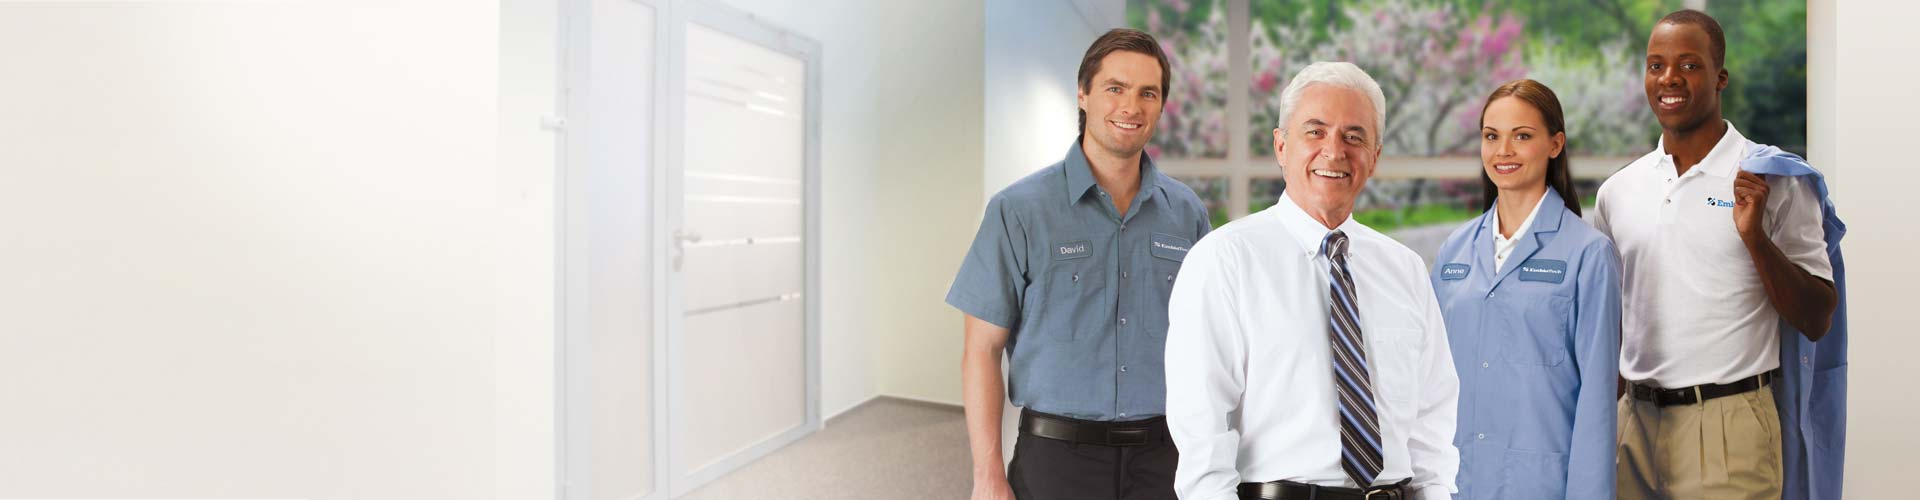 Customized and branded uniforms and workwear on four employees